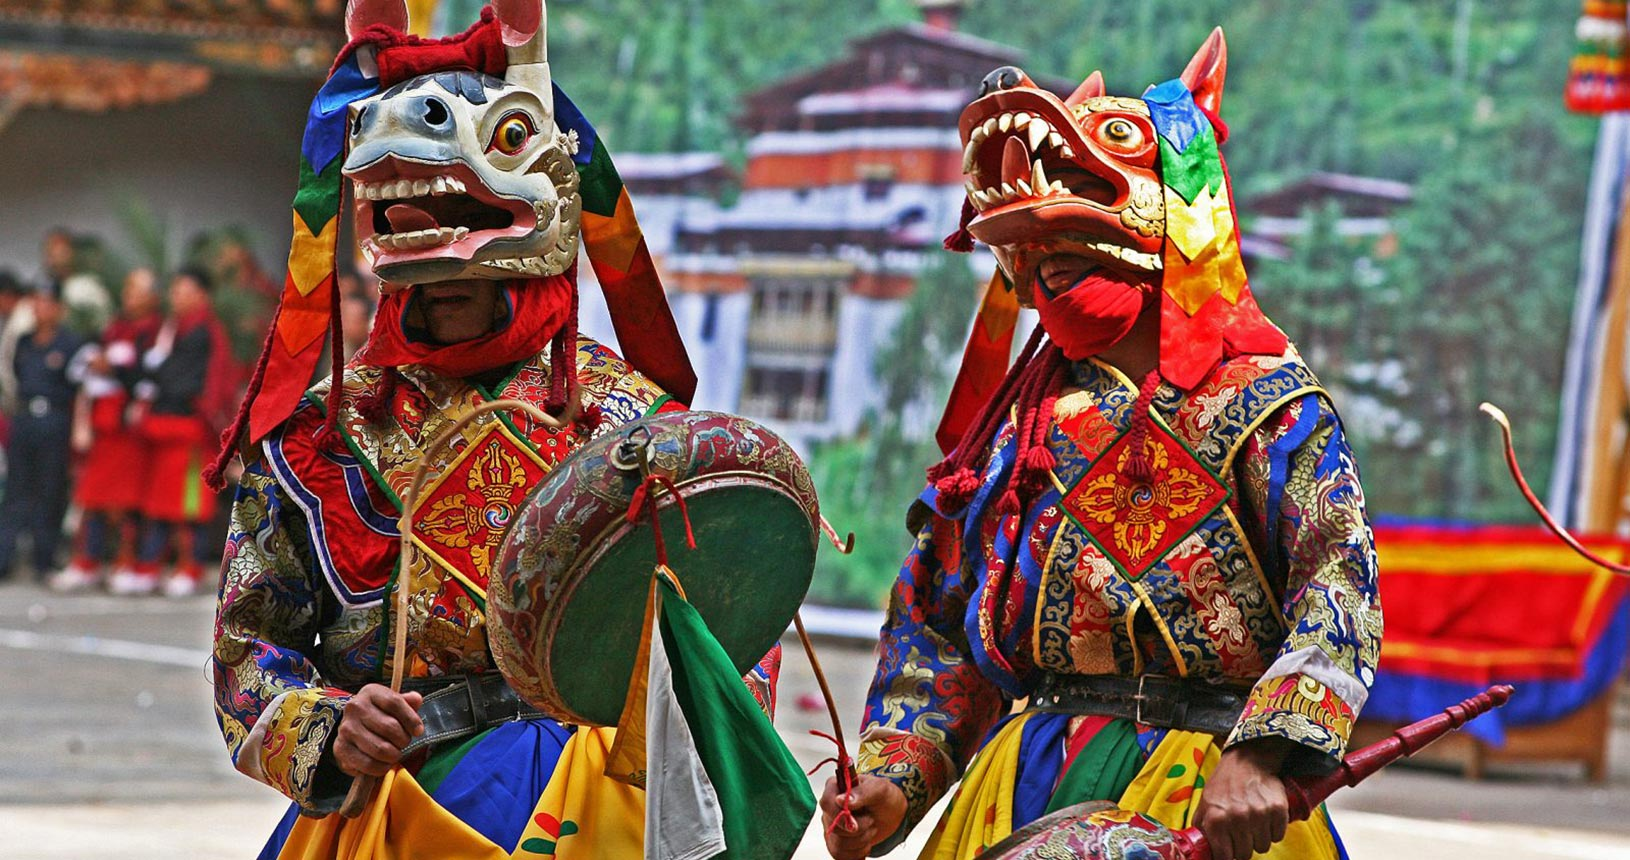 Haa Summer Festival in Bhutan